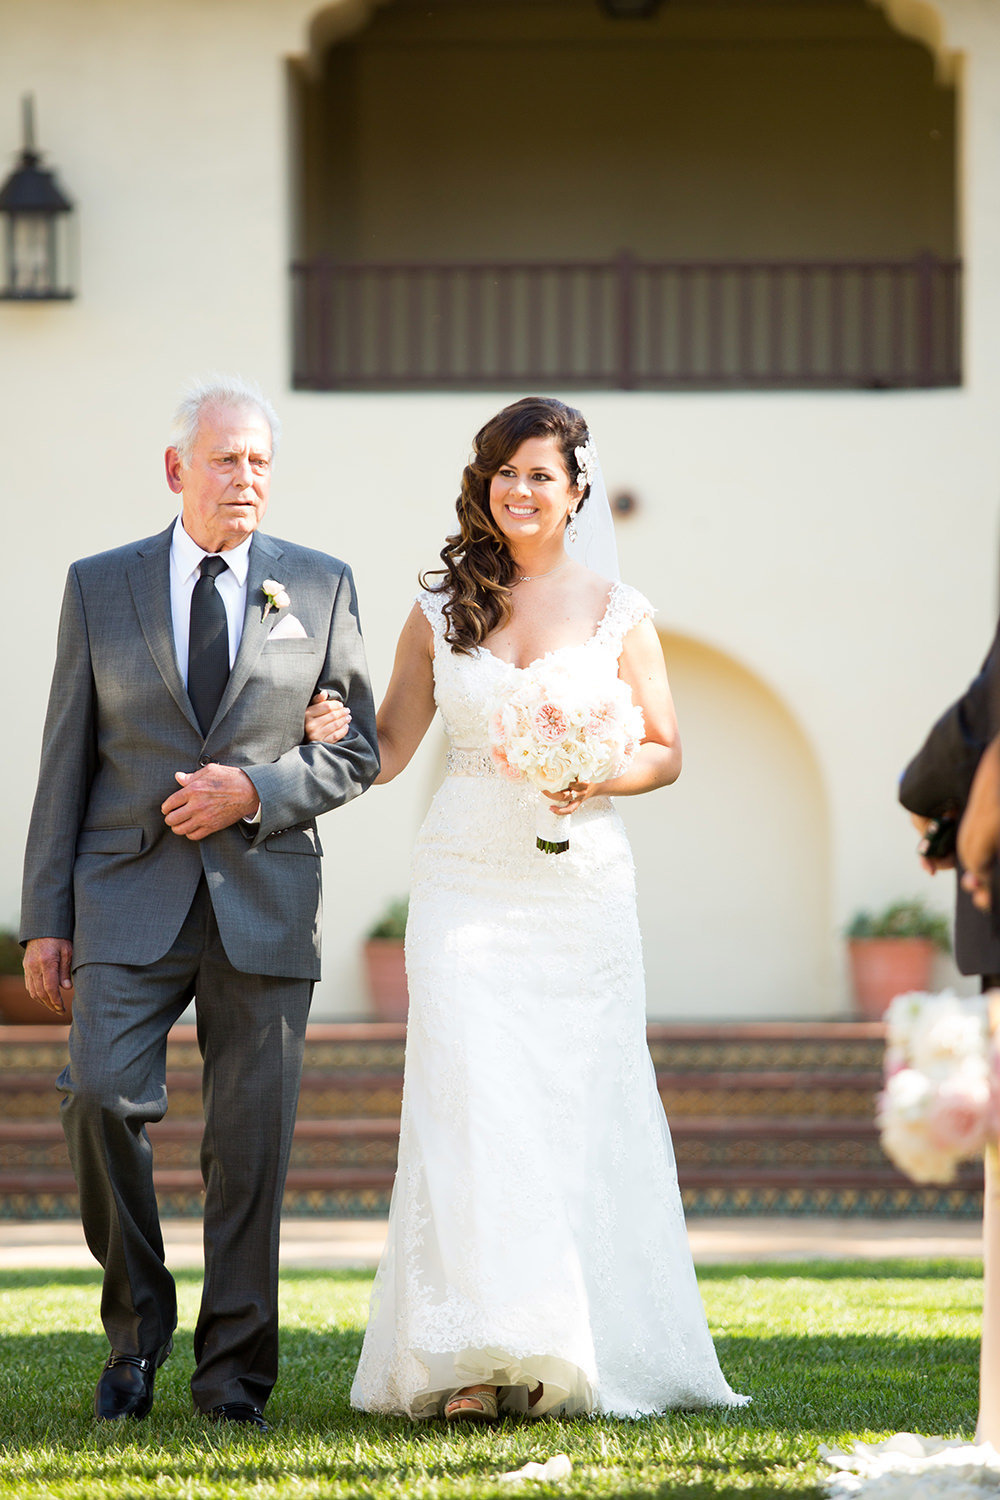 A bride and her father walk the aisle